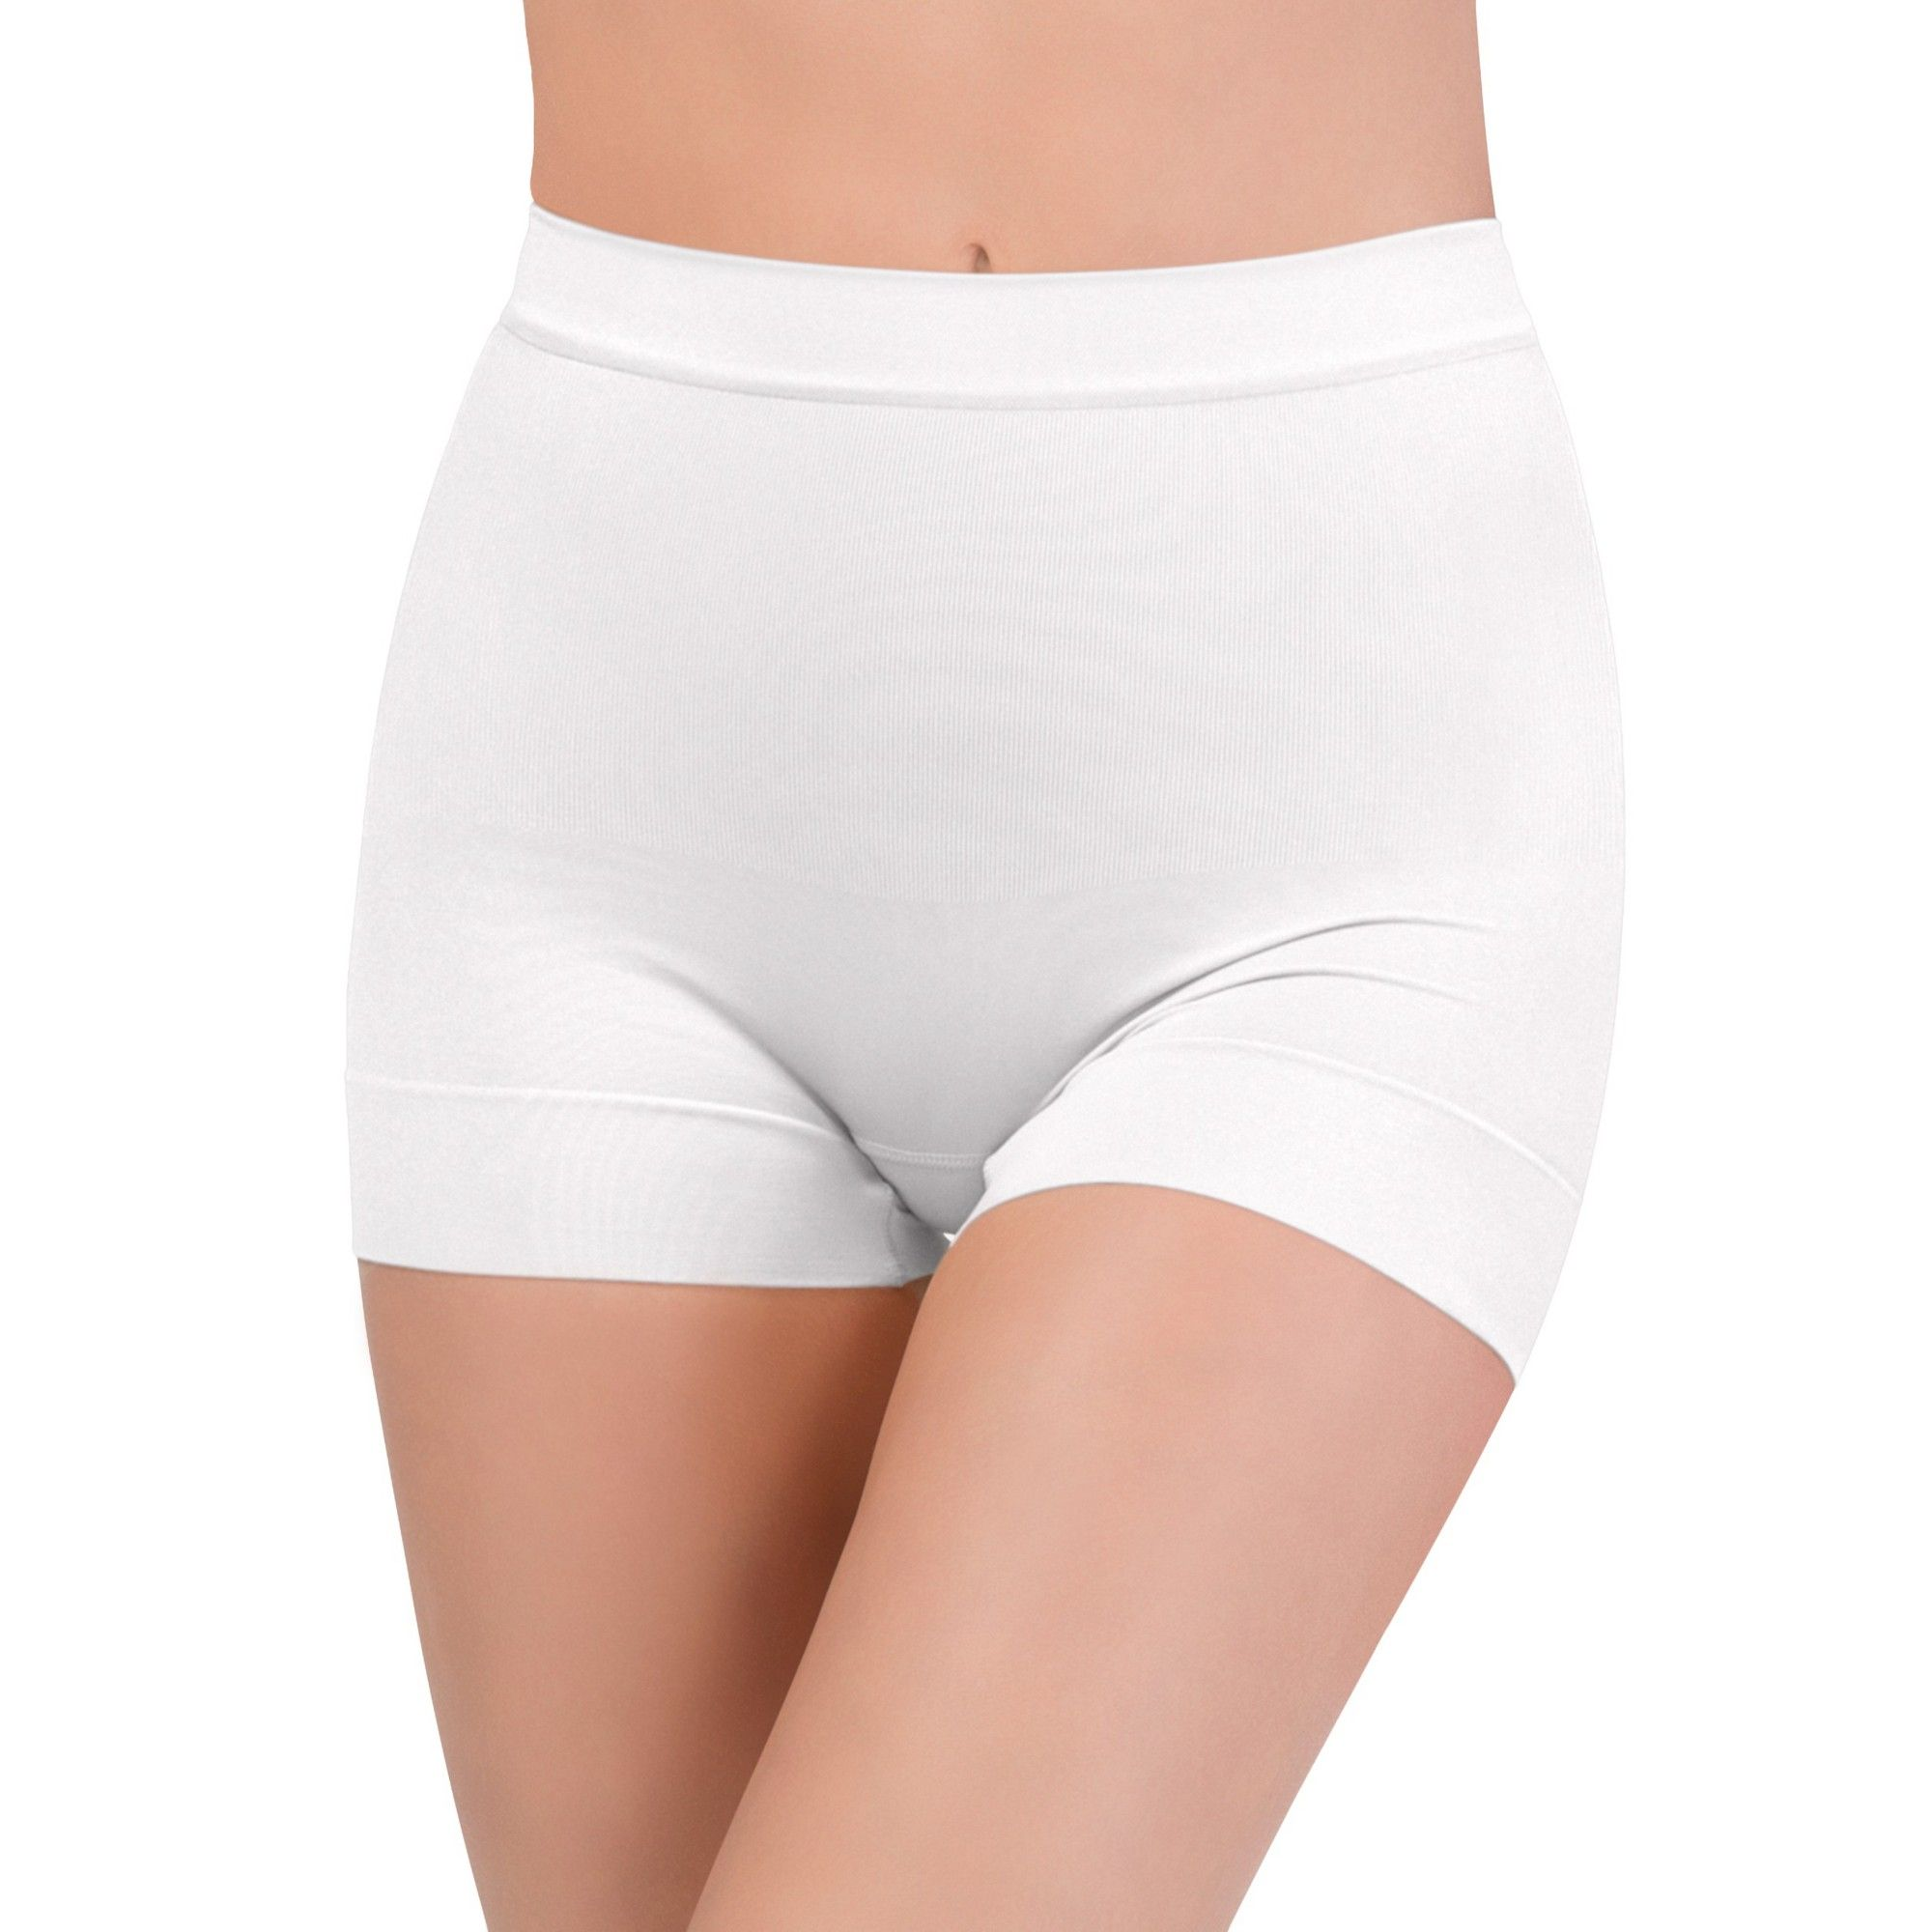 7a54afdeb08c0 Assets by Spanx Women s All Around Smoothers Seamless Shaping Girl Shorts -  White 1X